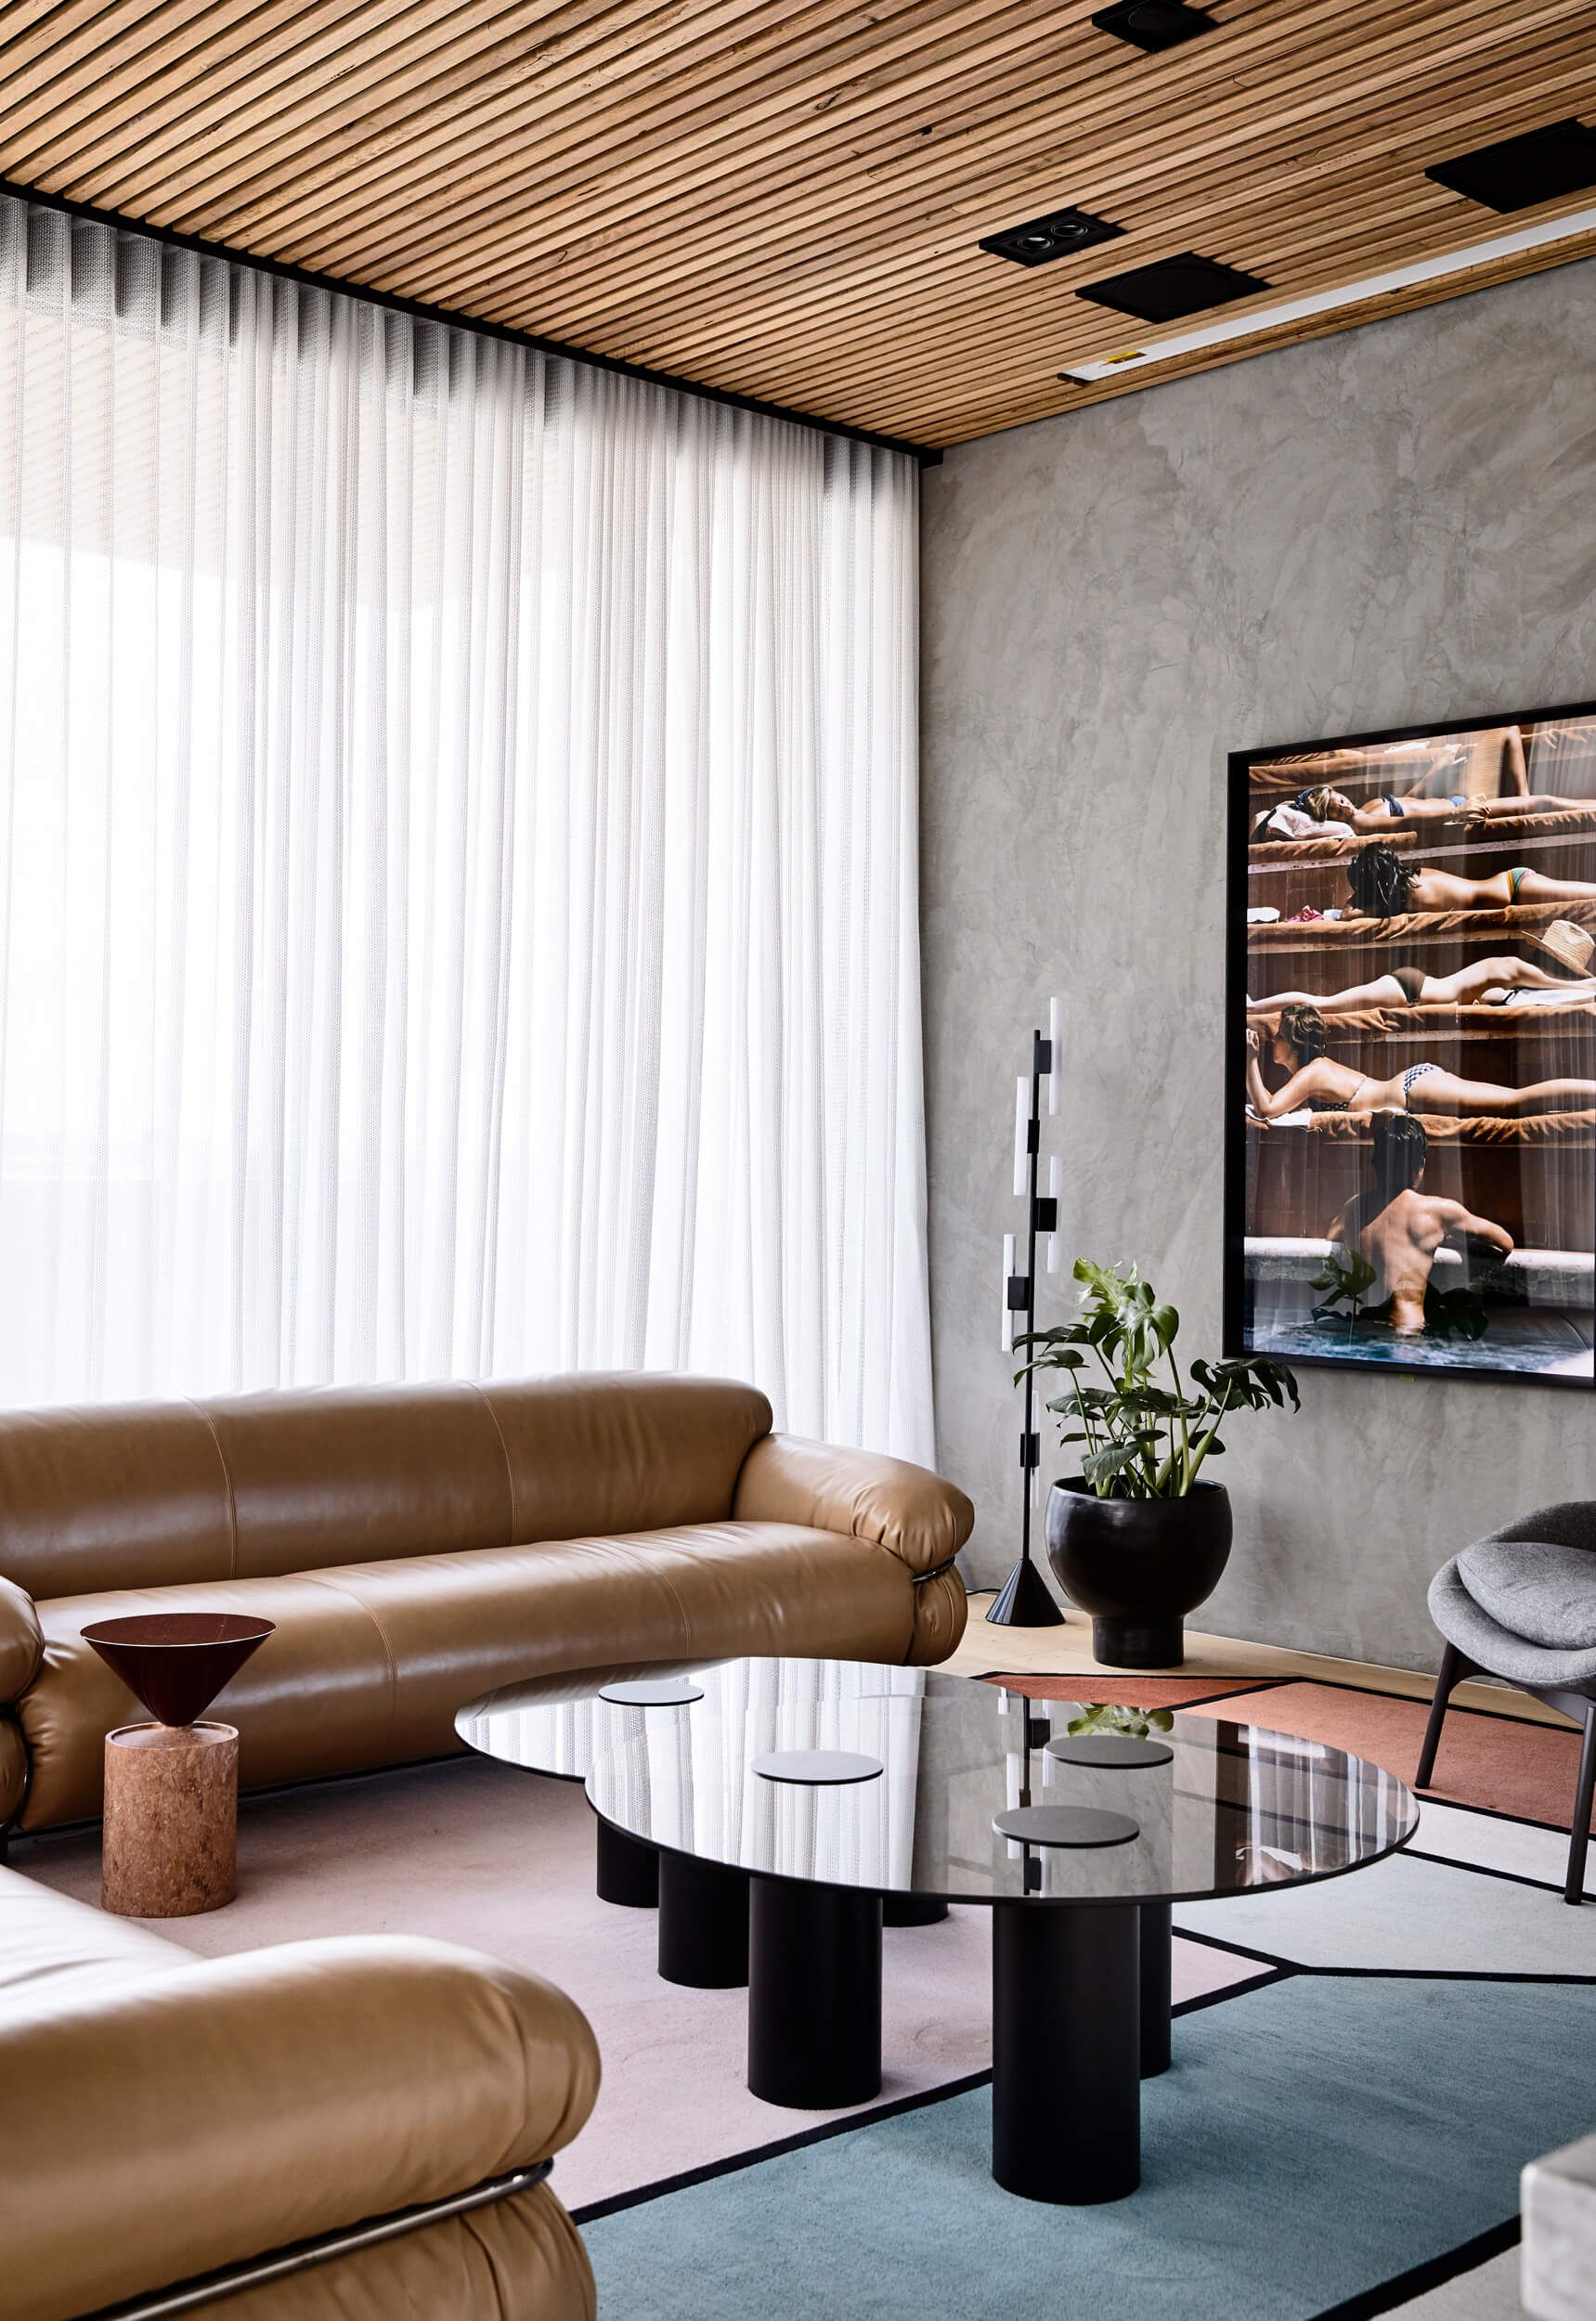 Holly Penthouse by Tom Robertson Architects Local Design